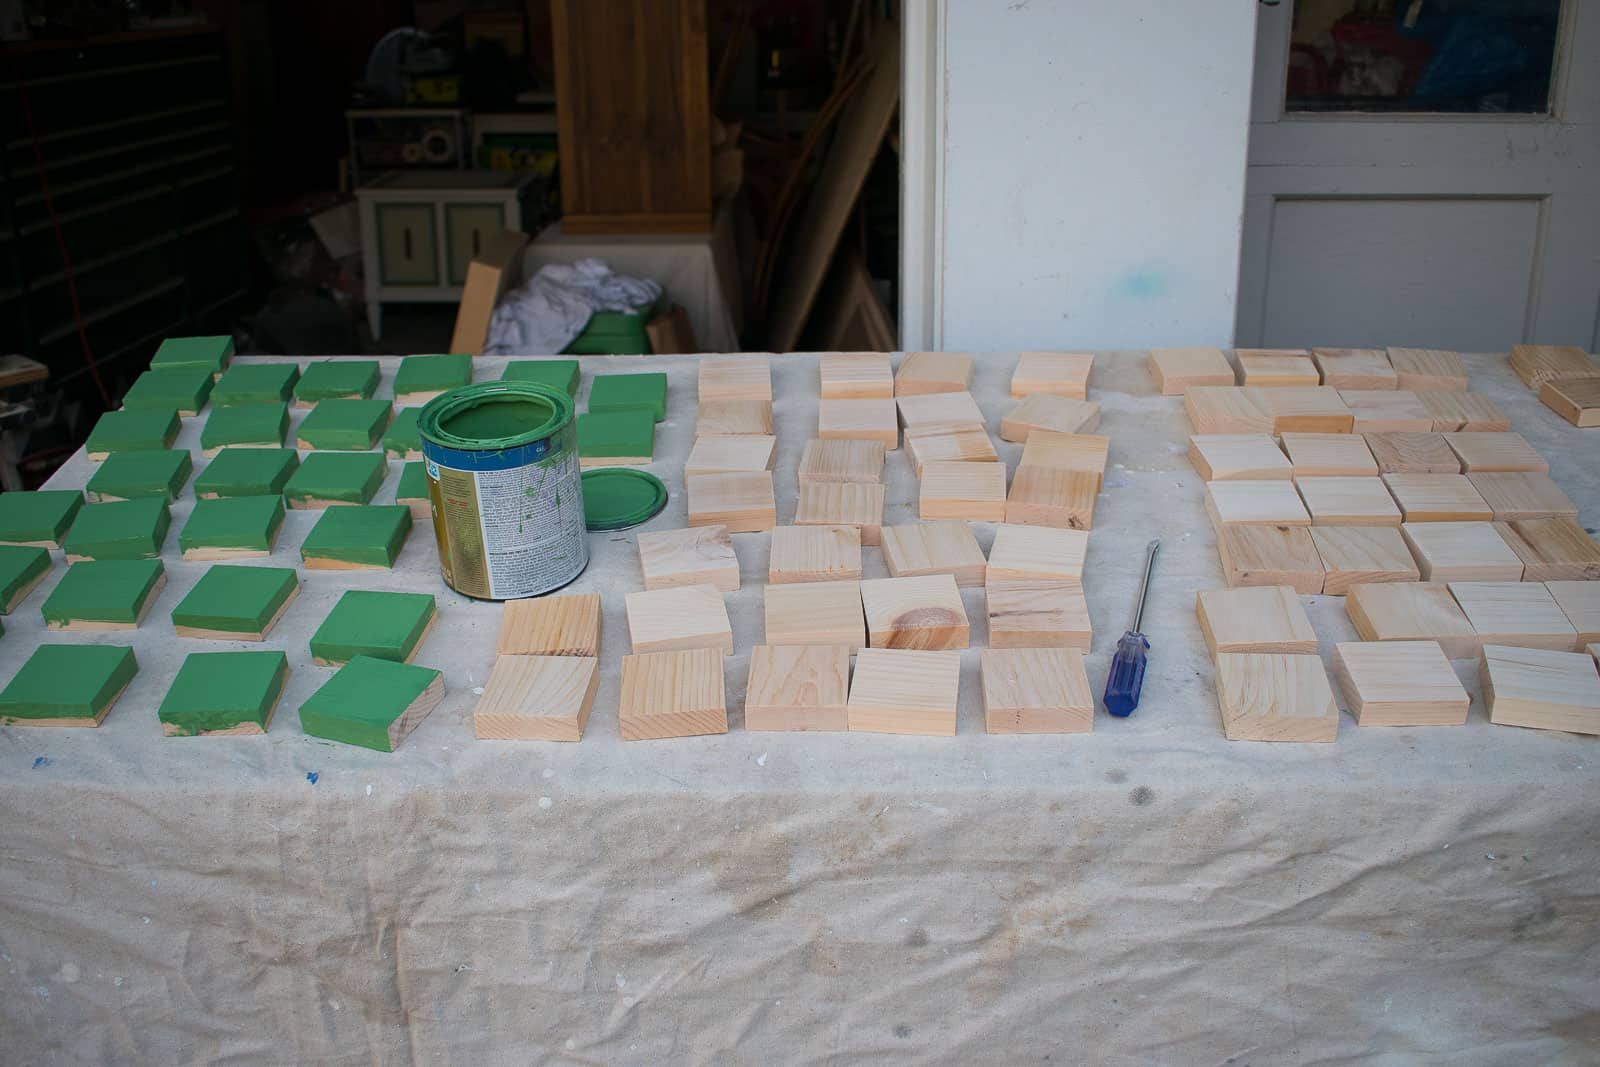 painting the wood squares